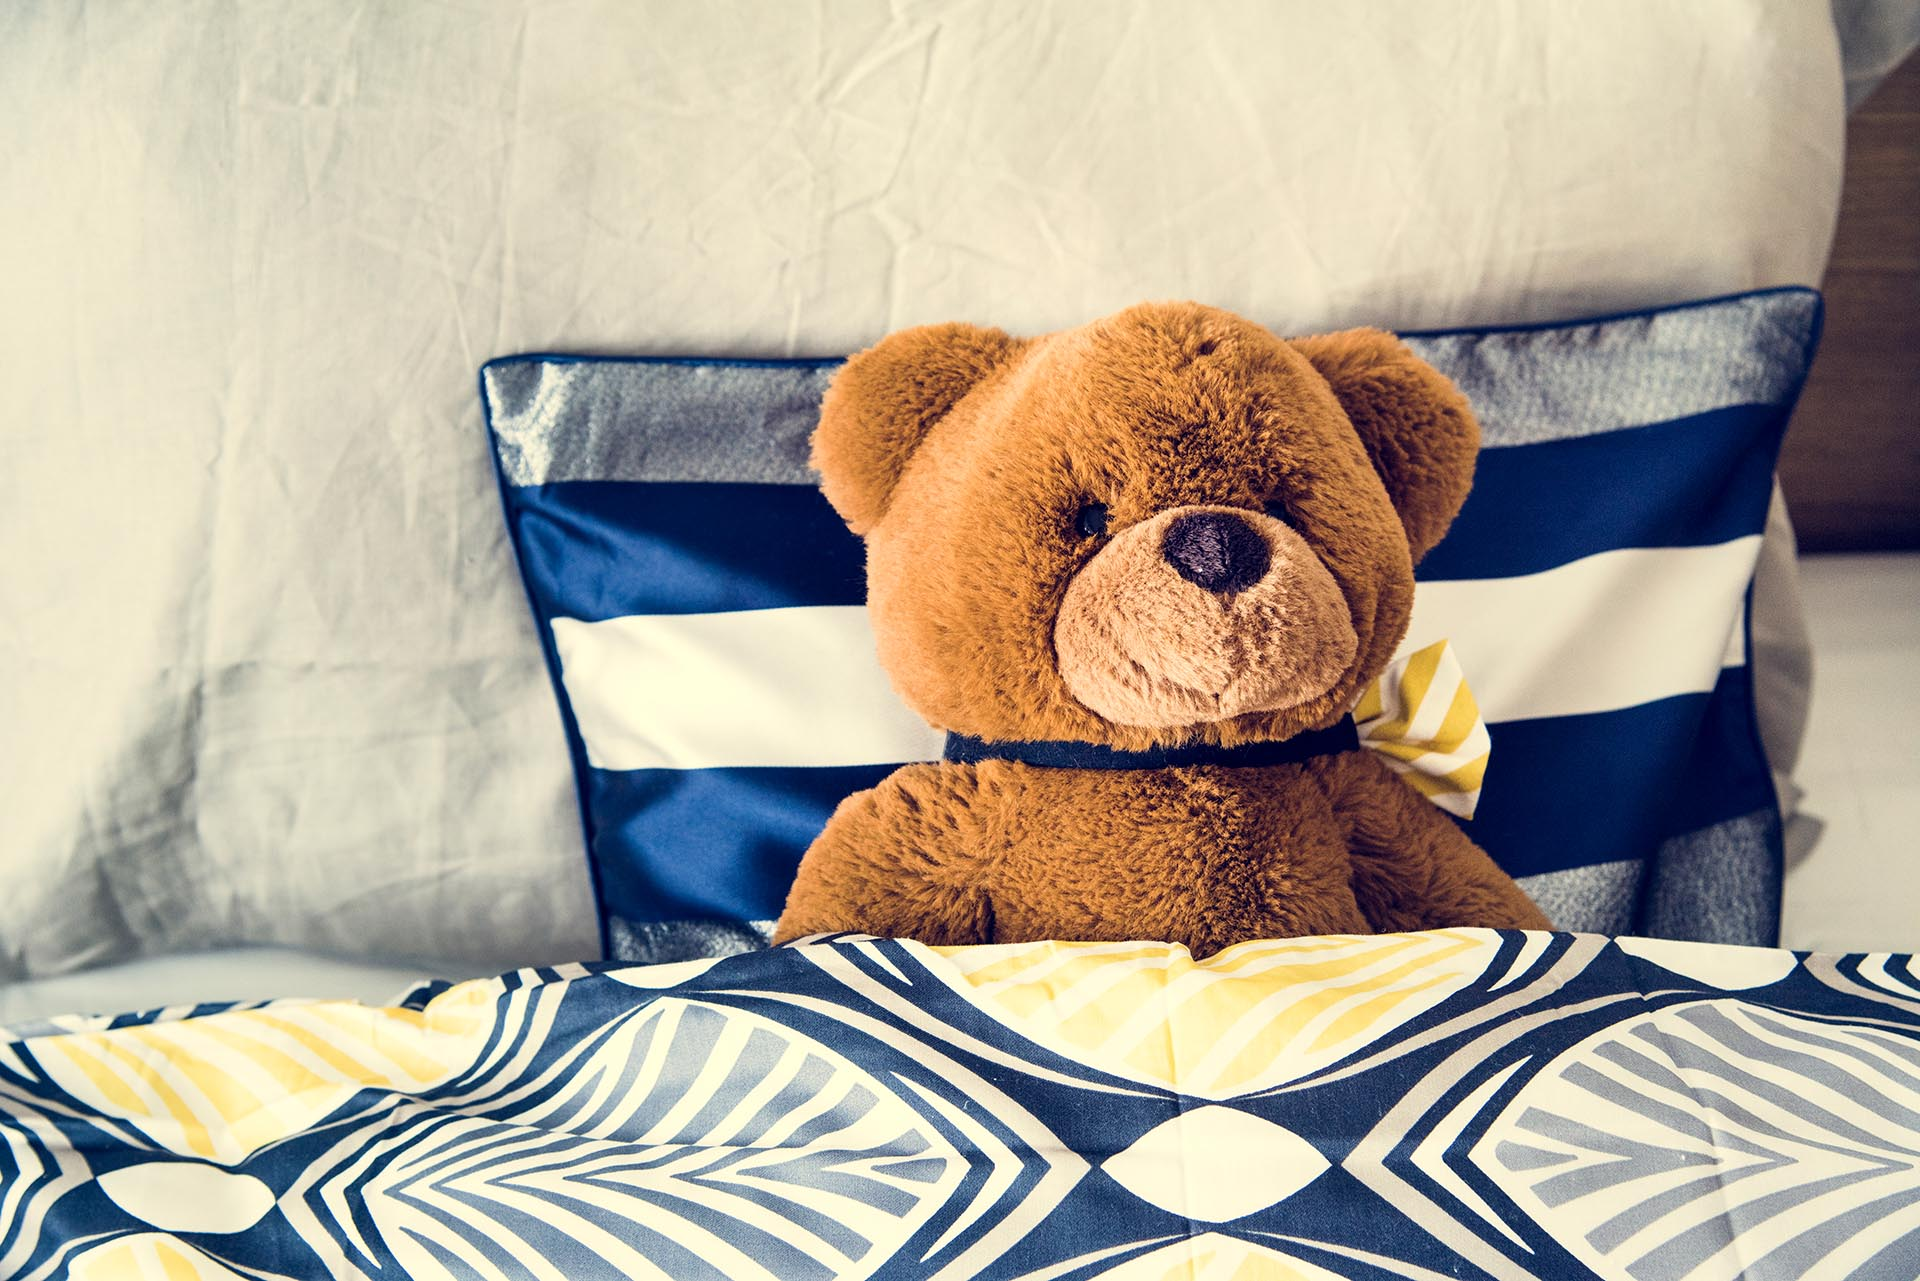 A photo of a Teddy bear on the bed